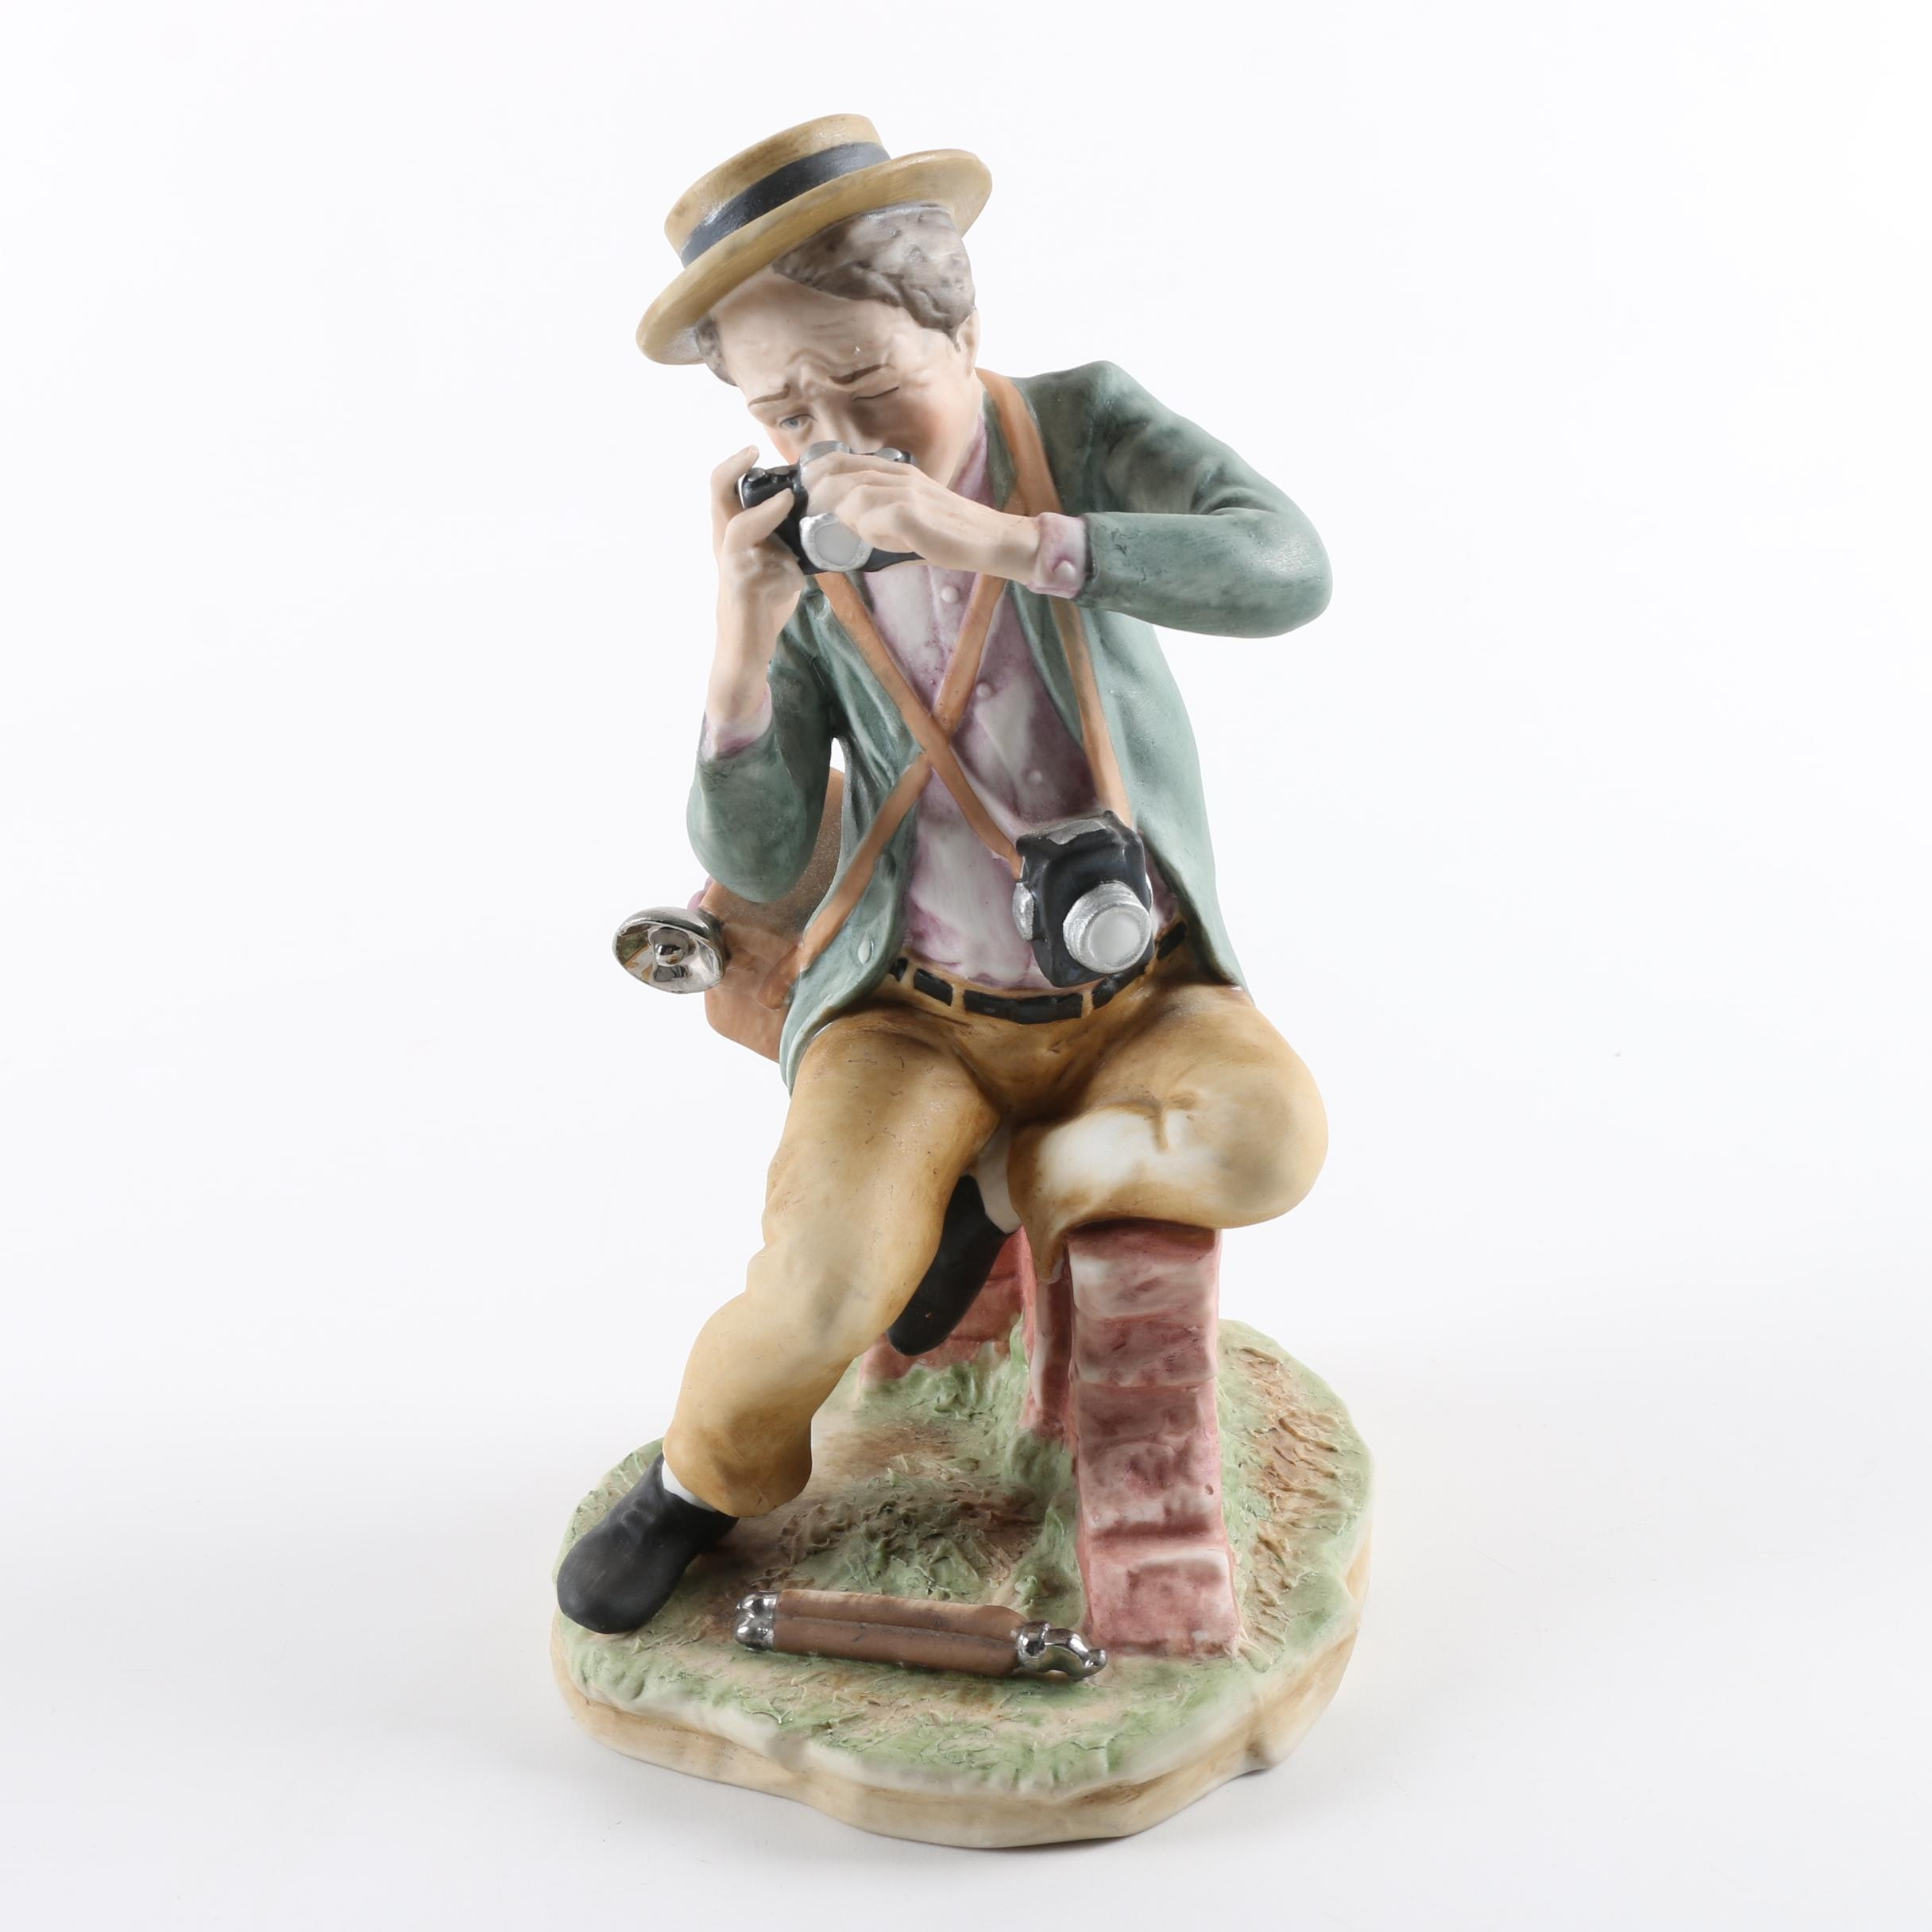 Vintage Shutterbugs by Pucci Ceramic Figurine